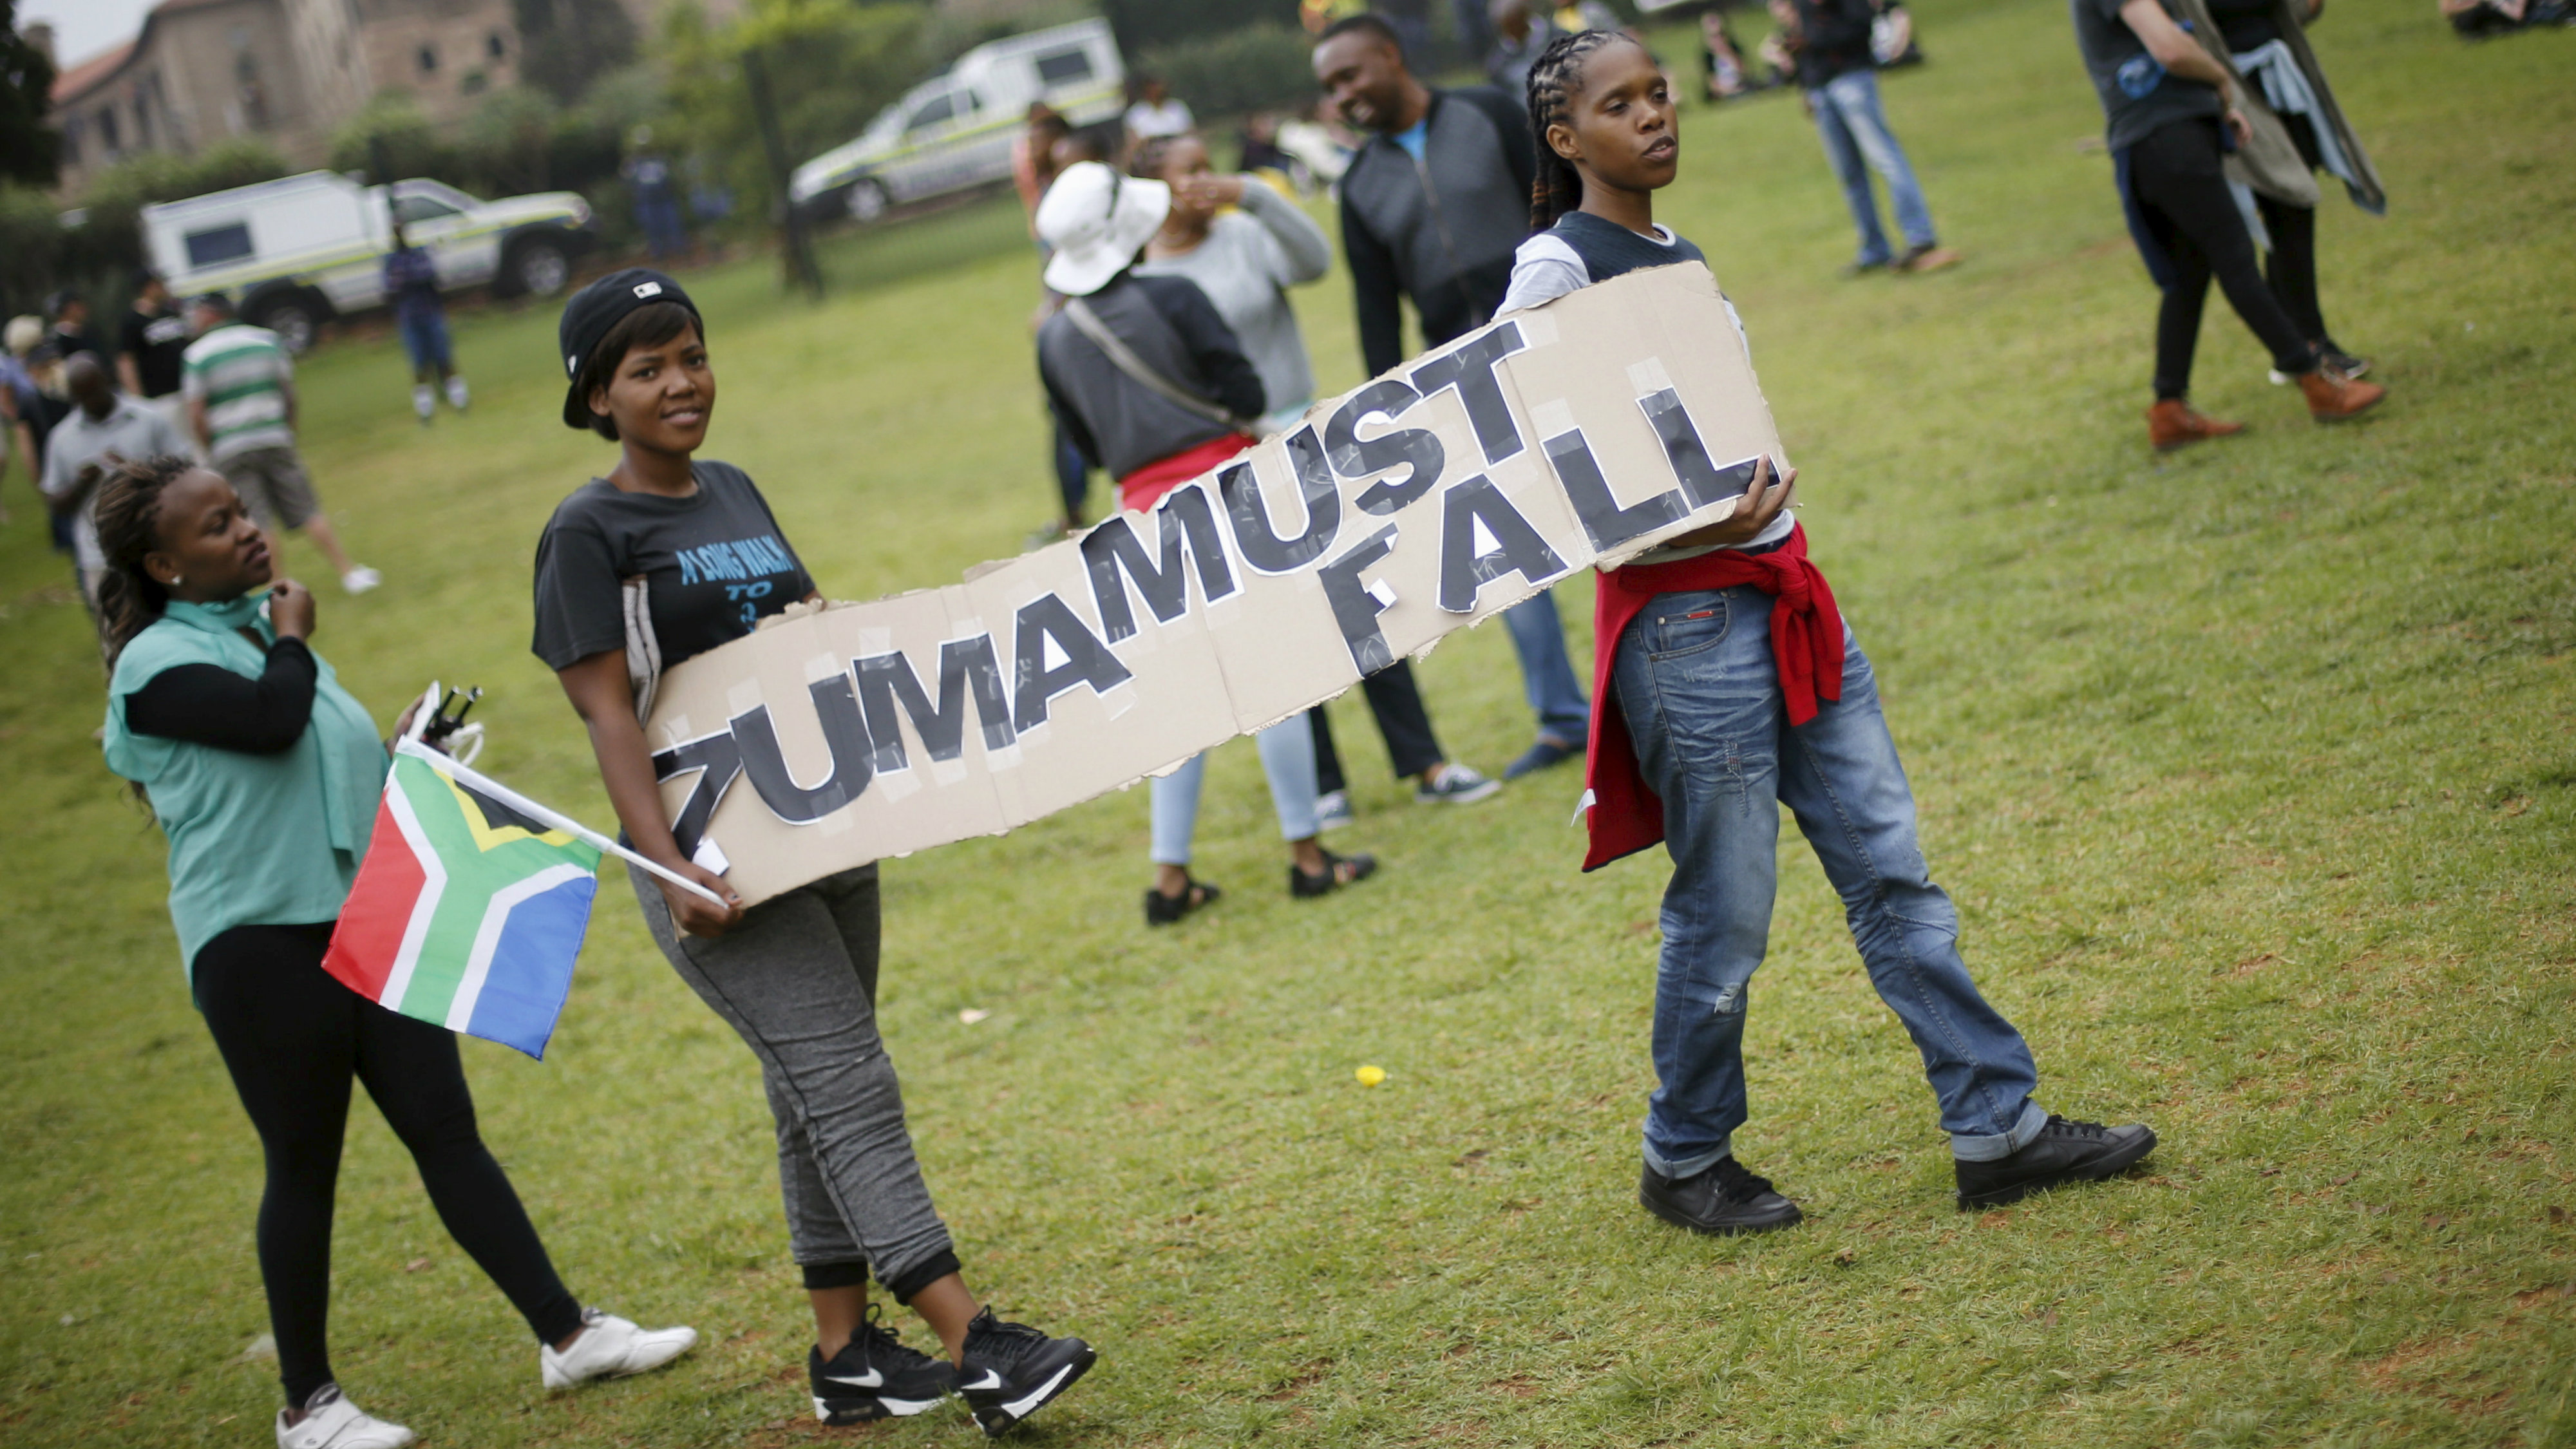 Protesters carry placards as they take part in a 'Zuma must fall' demonstration in Pretoria, South Africa December 16, 2015